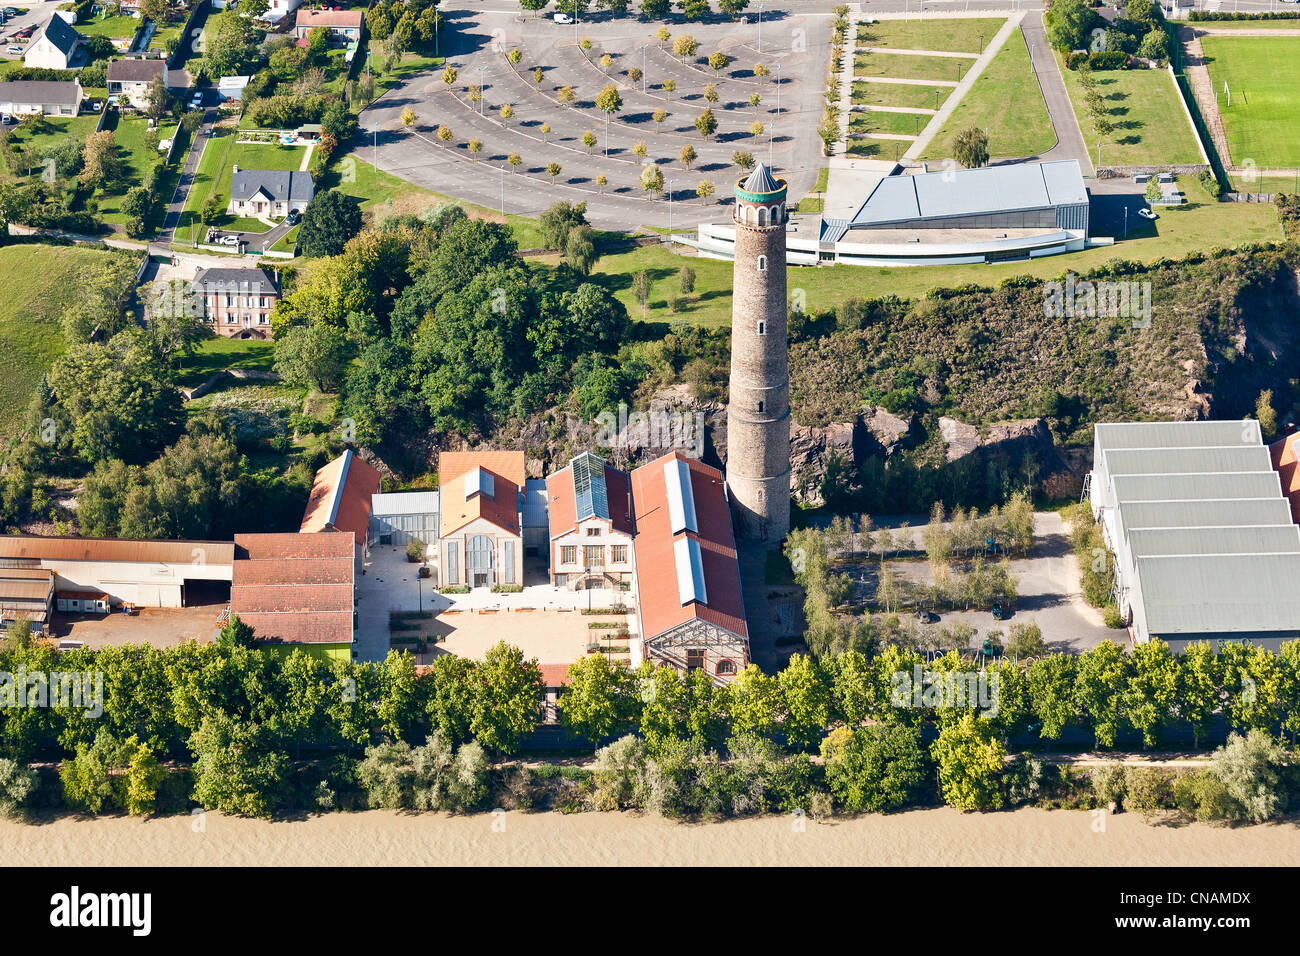 France, Loire-Atlantique, Couéron, the lead tower (aerial photography) - Stock Image